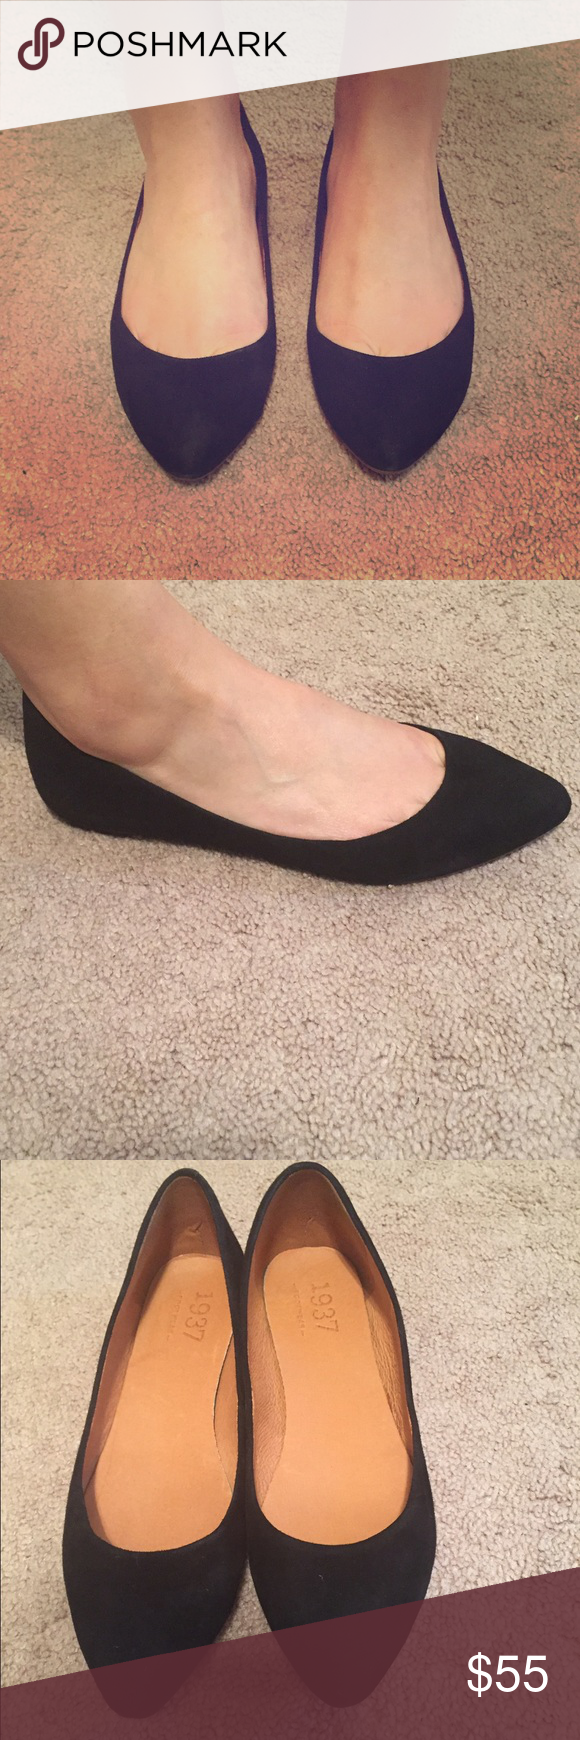 Madewell suede flats Re-posh. Never worn! Madewell Shoes Flats & Loafers